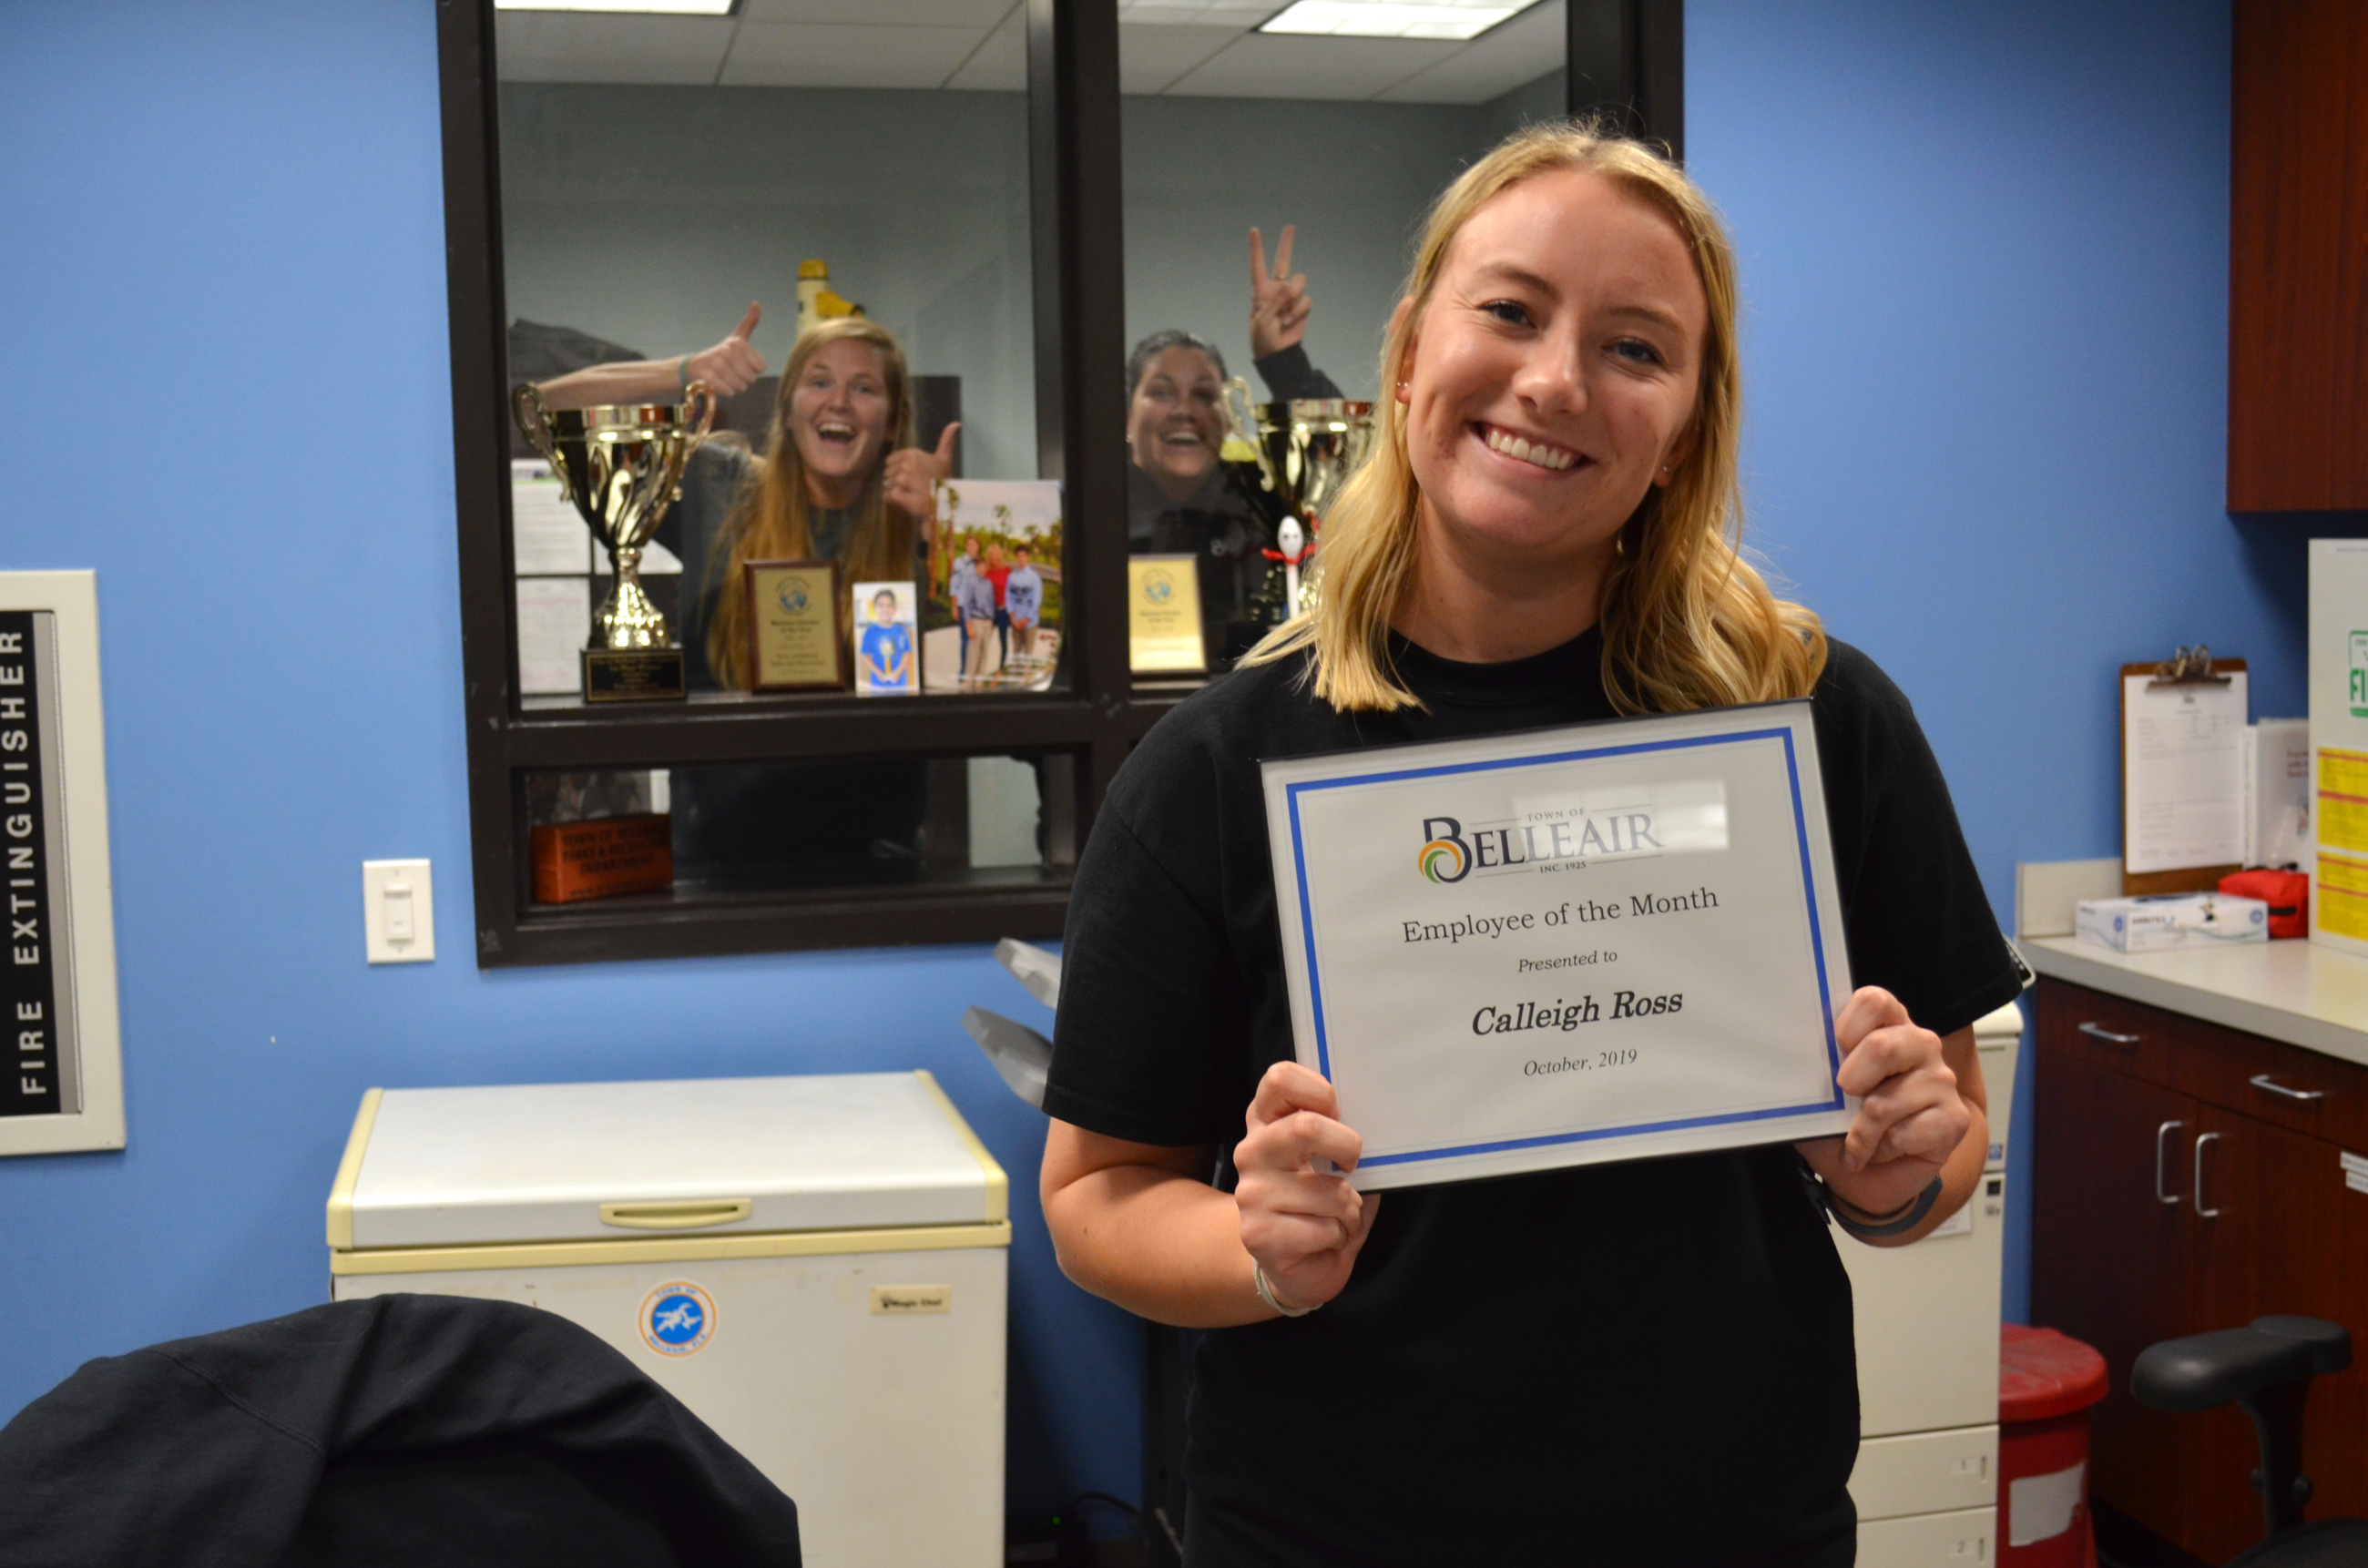 Calleigh Ross smiles with her Employee of the Month certificate at the Dimmitt Community Center fron